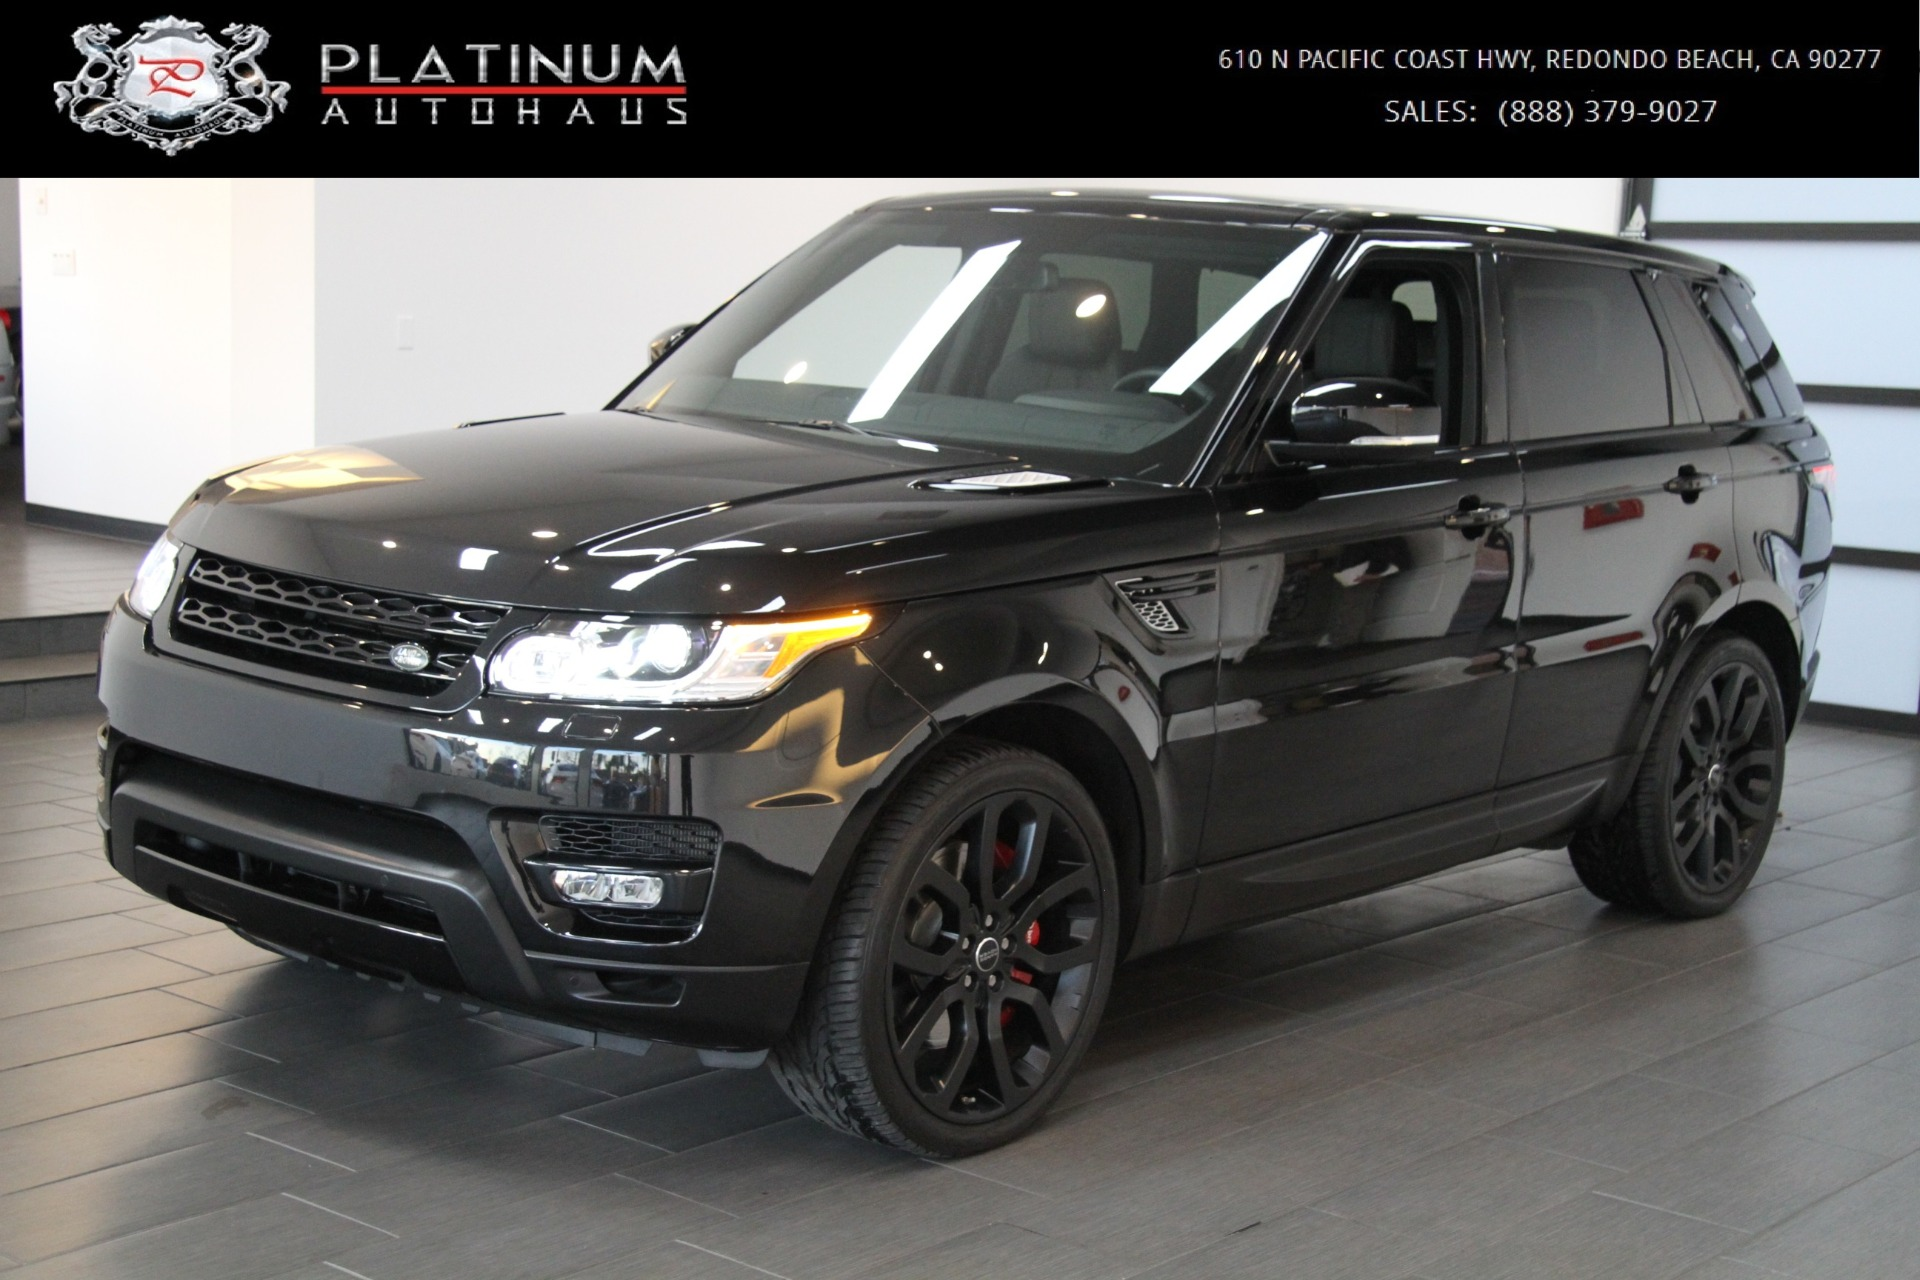 2014 land rover range rover sport supercharged stock 6114 for sale near redondo beach ca ca. Black Bedroom Furniture Sets. Home Design Ideas